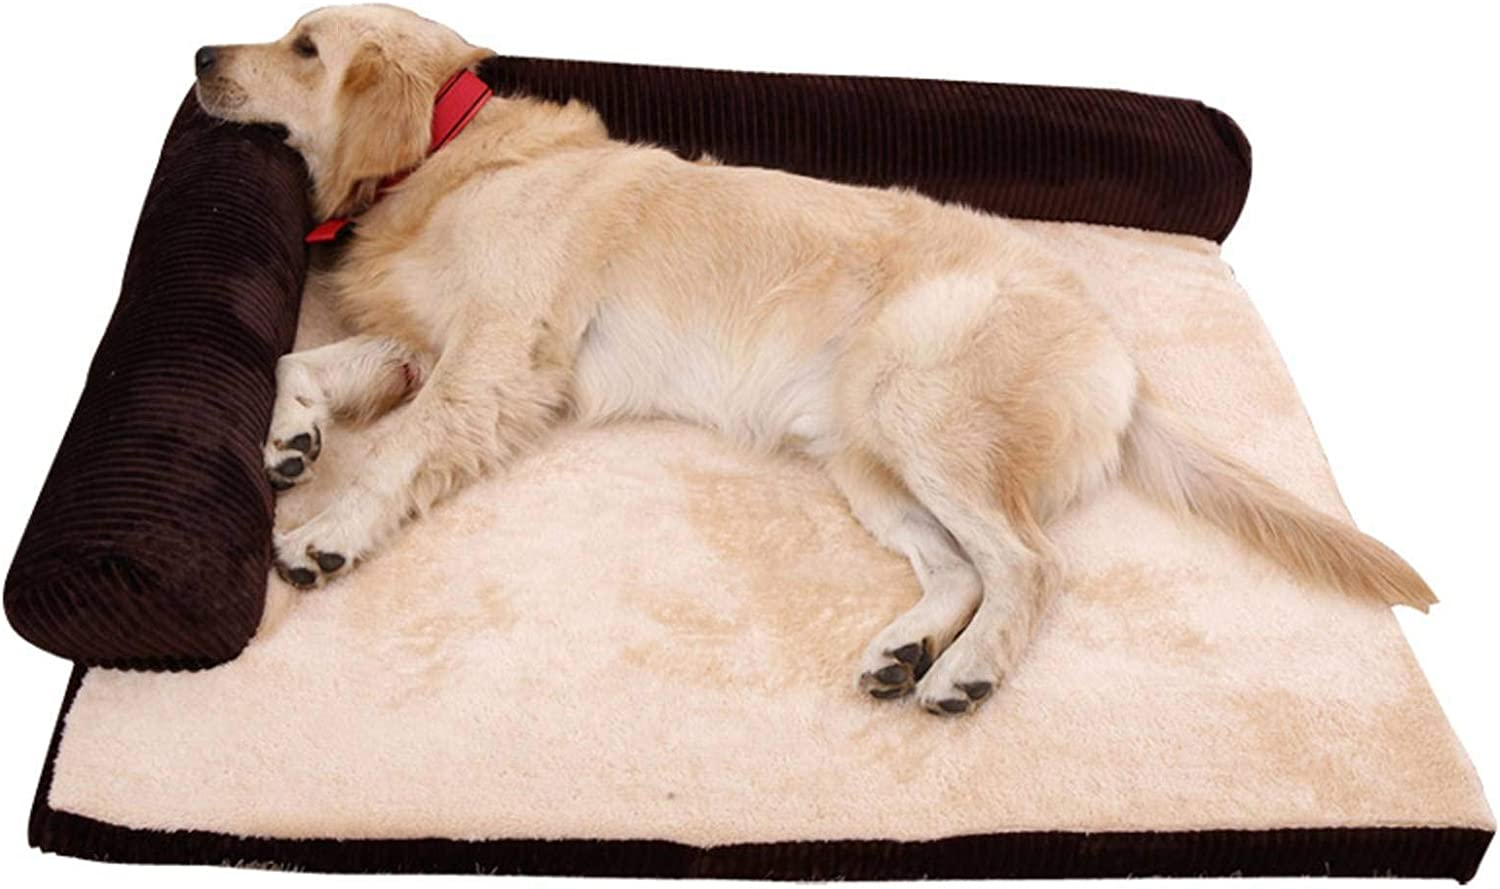 N-B Pet Bed For Large DogsPet House Sofa Cushion Dog Bed Winter Kennel Soft Pet Cat House Blanket Dog Bed For Medium Dogs